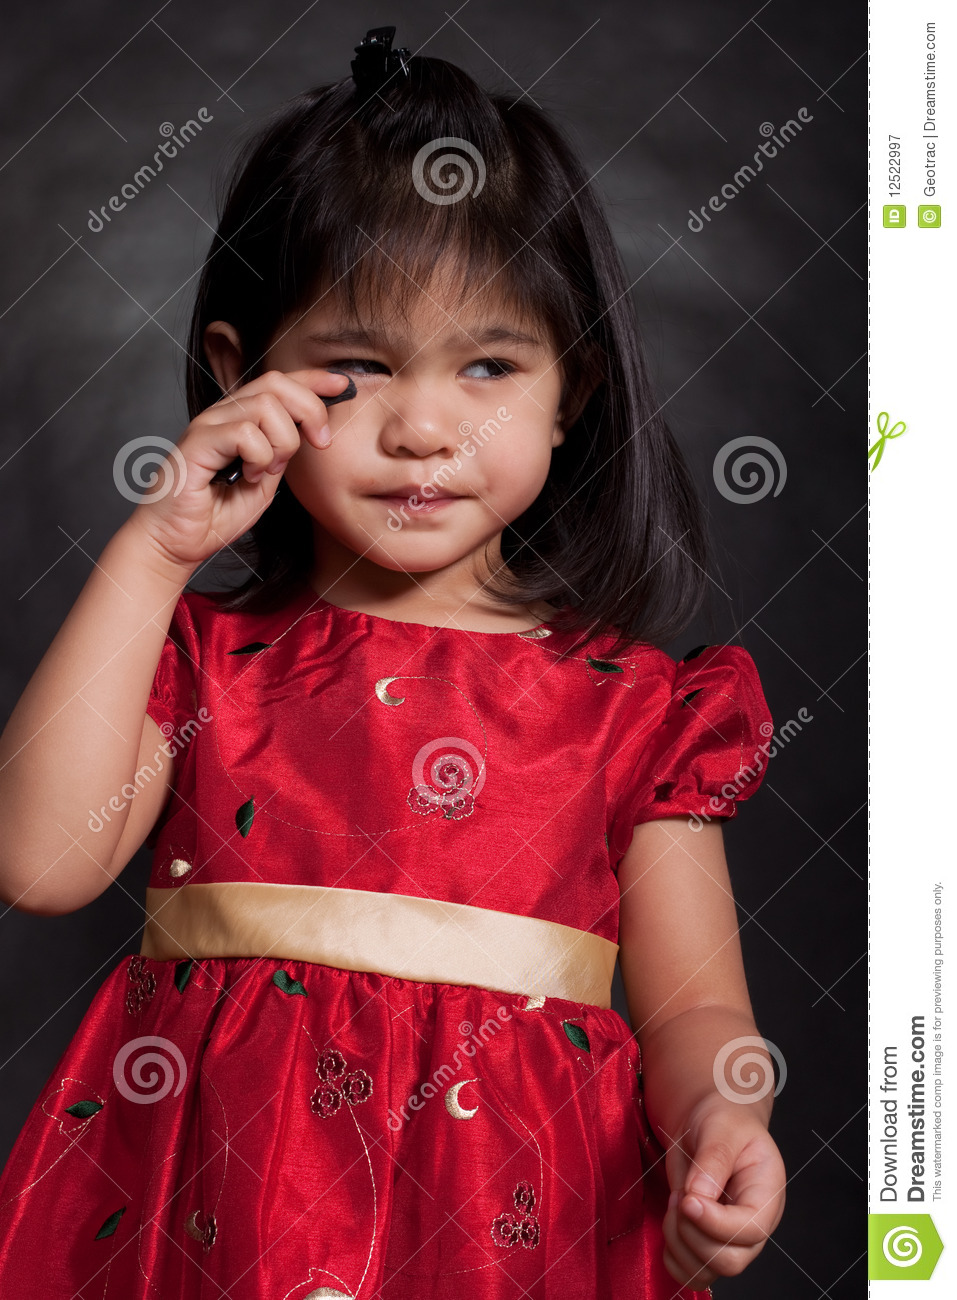 Cute Adorable 2-Year Old Toddler Girl Stock Image - Image Of Innocent, Female 12522997-8413